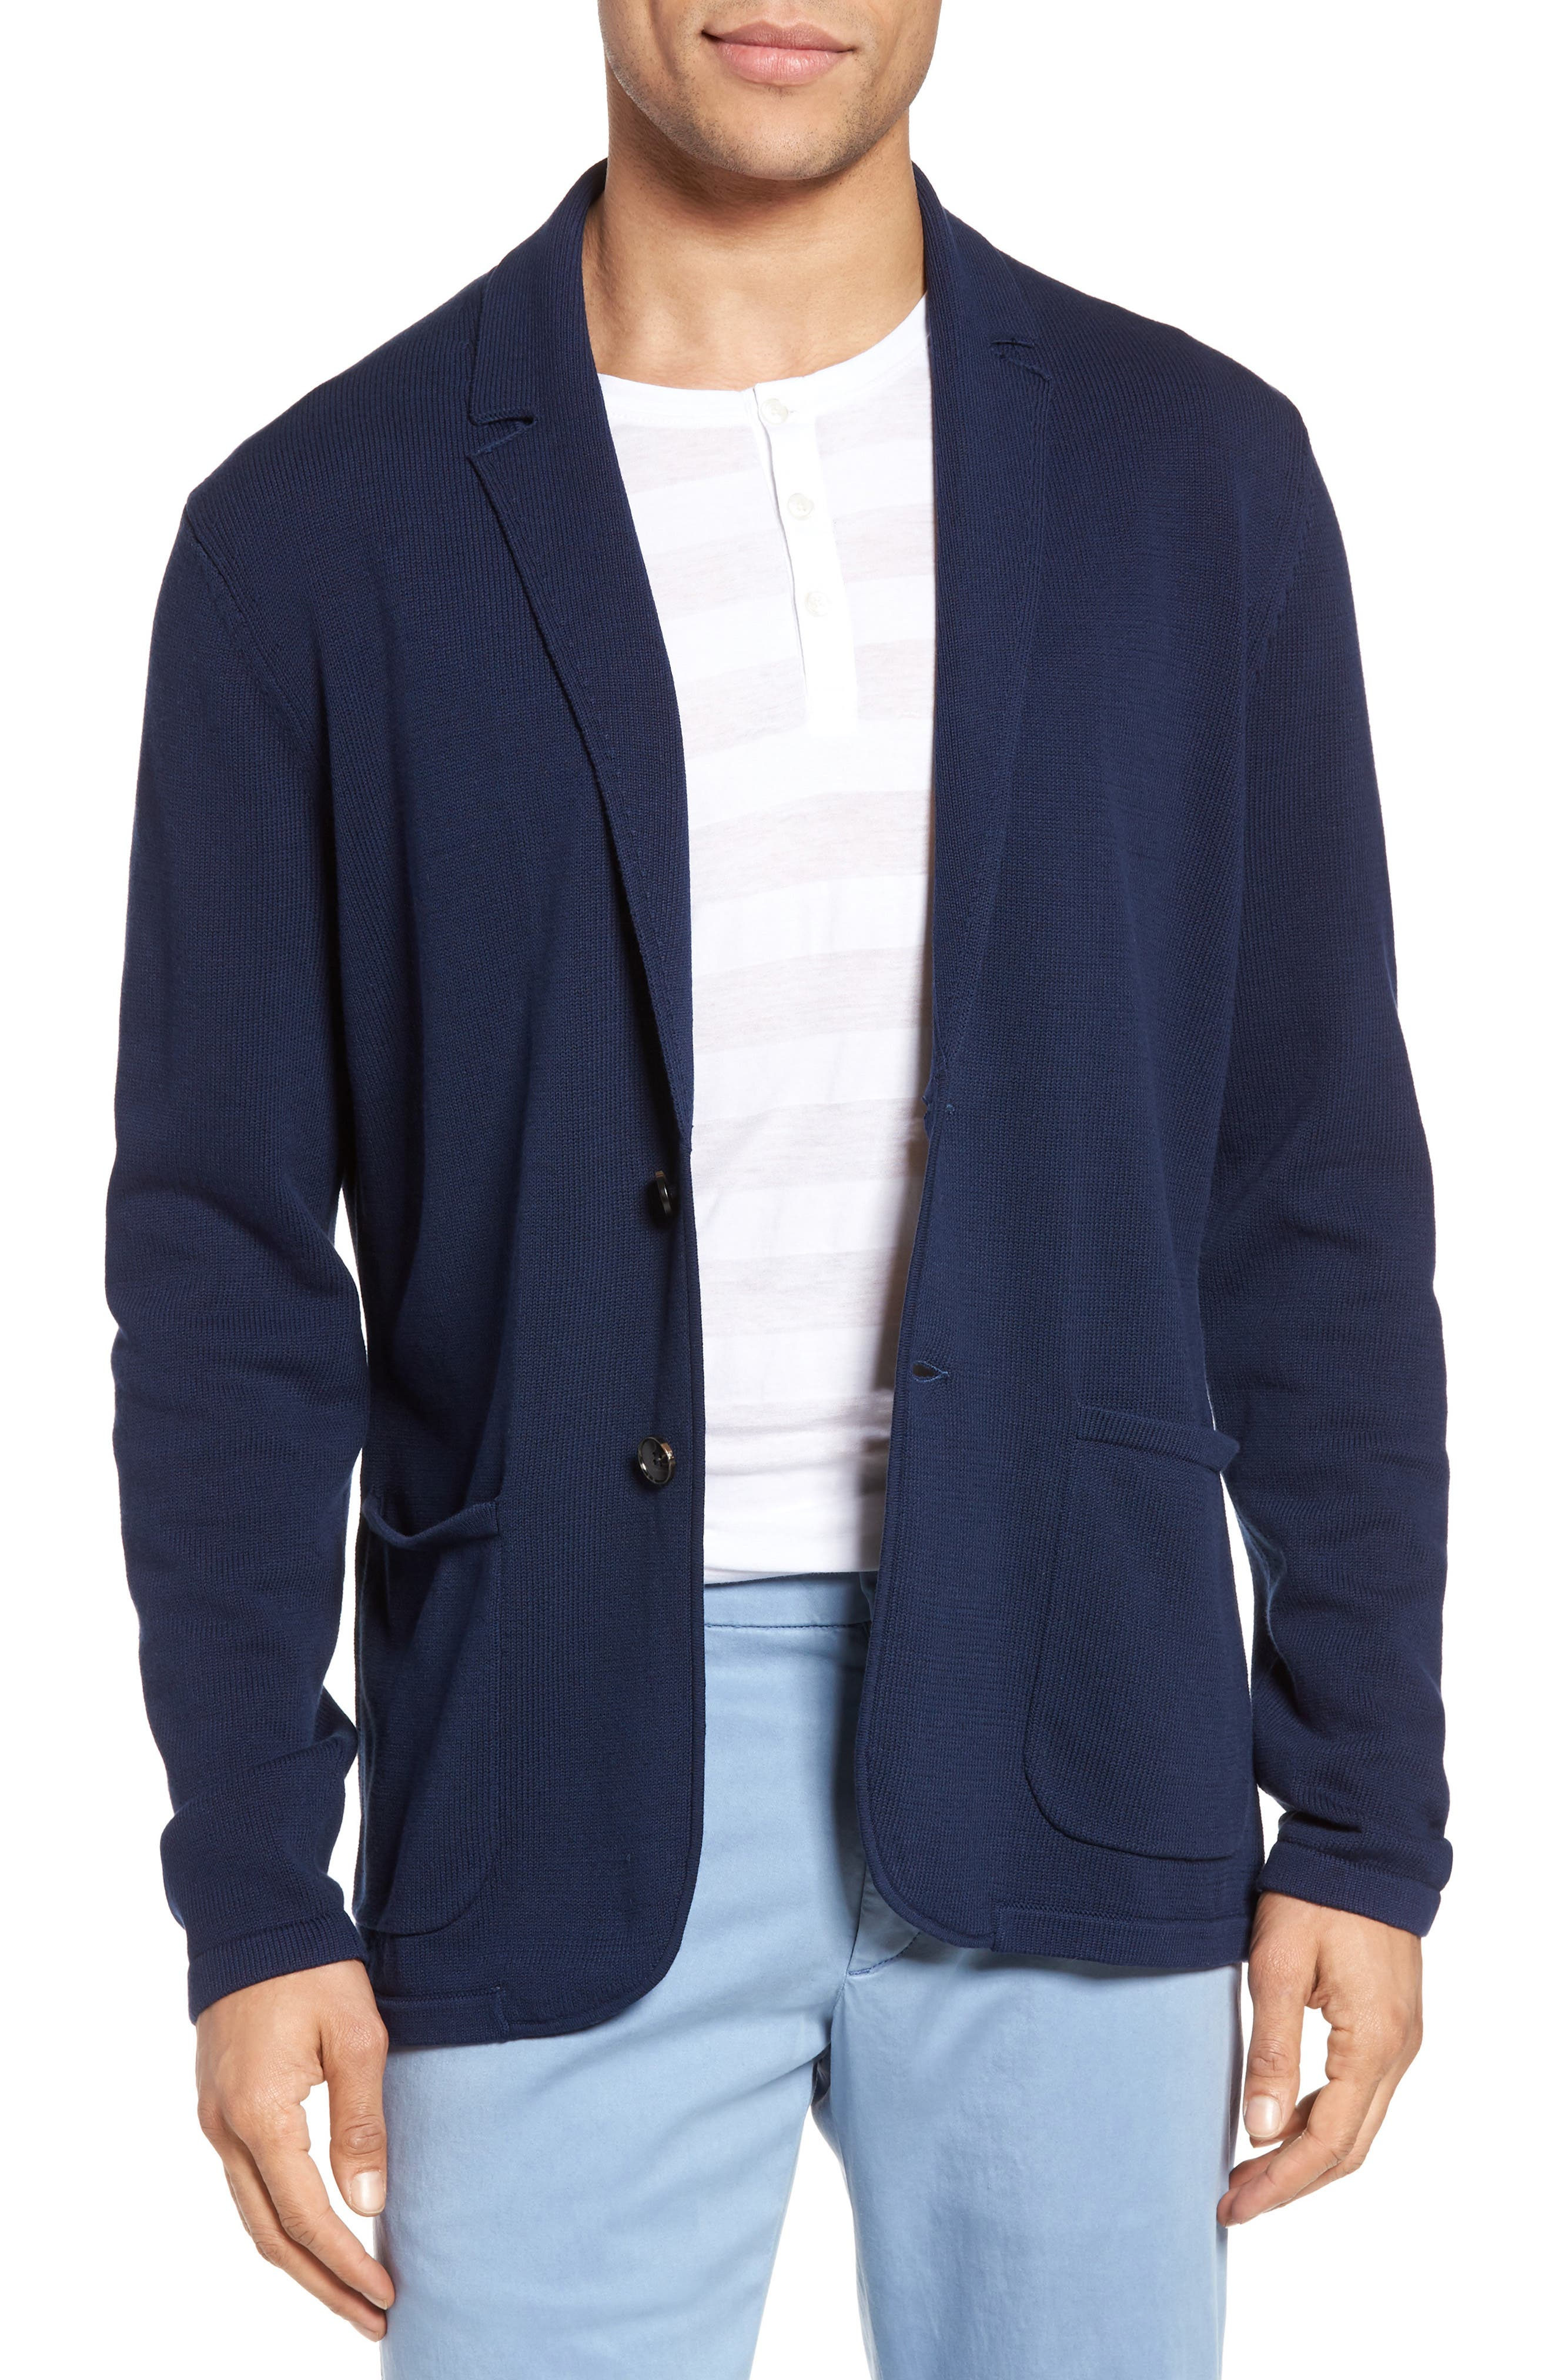 Main Image - Zachary Prell Alipinia Notch Collar Cardigan